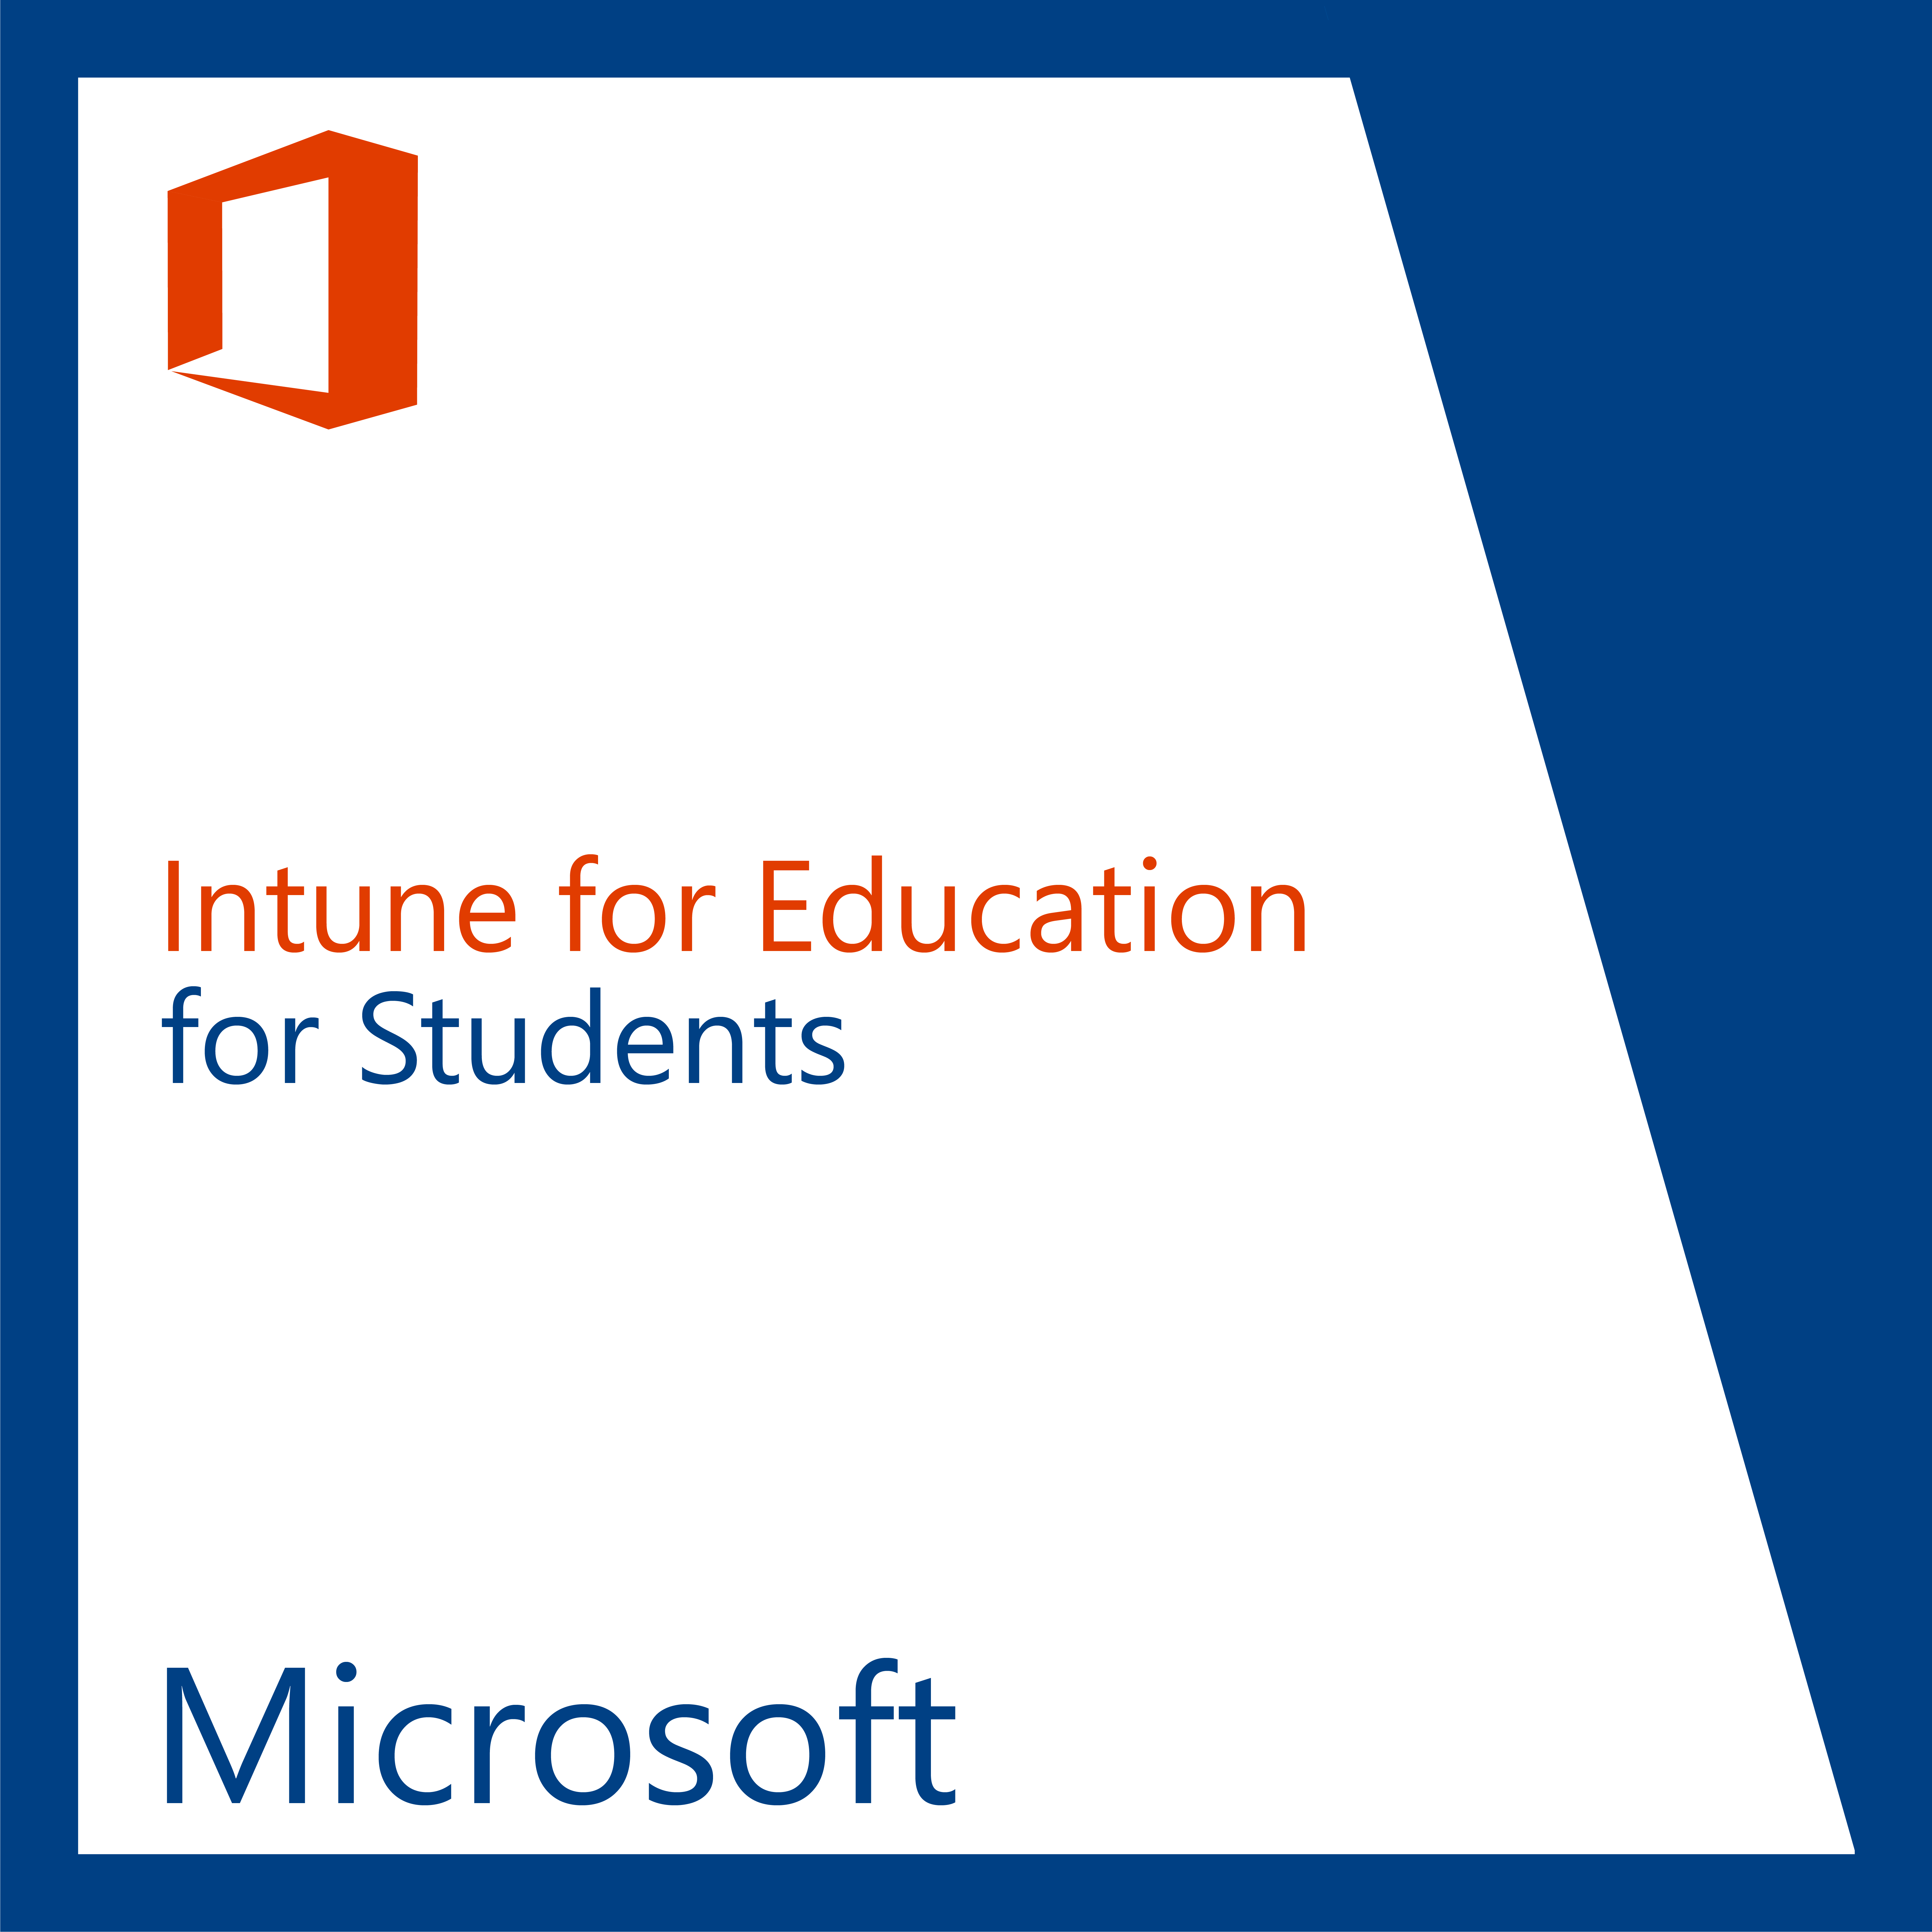 intune-for-education-for-students